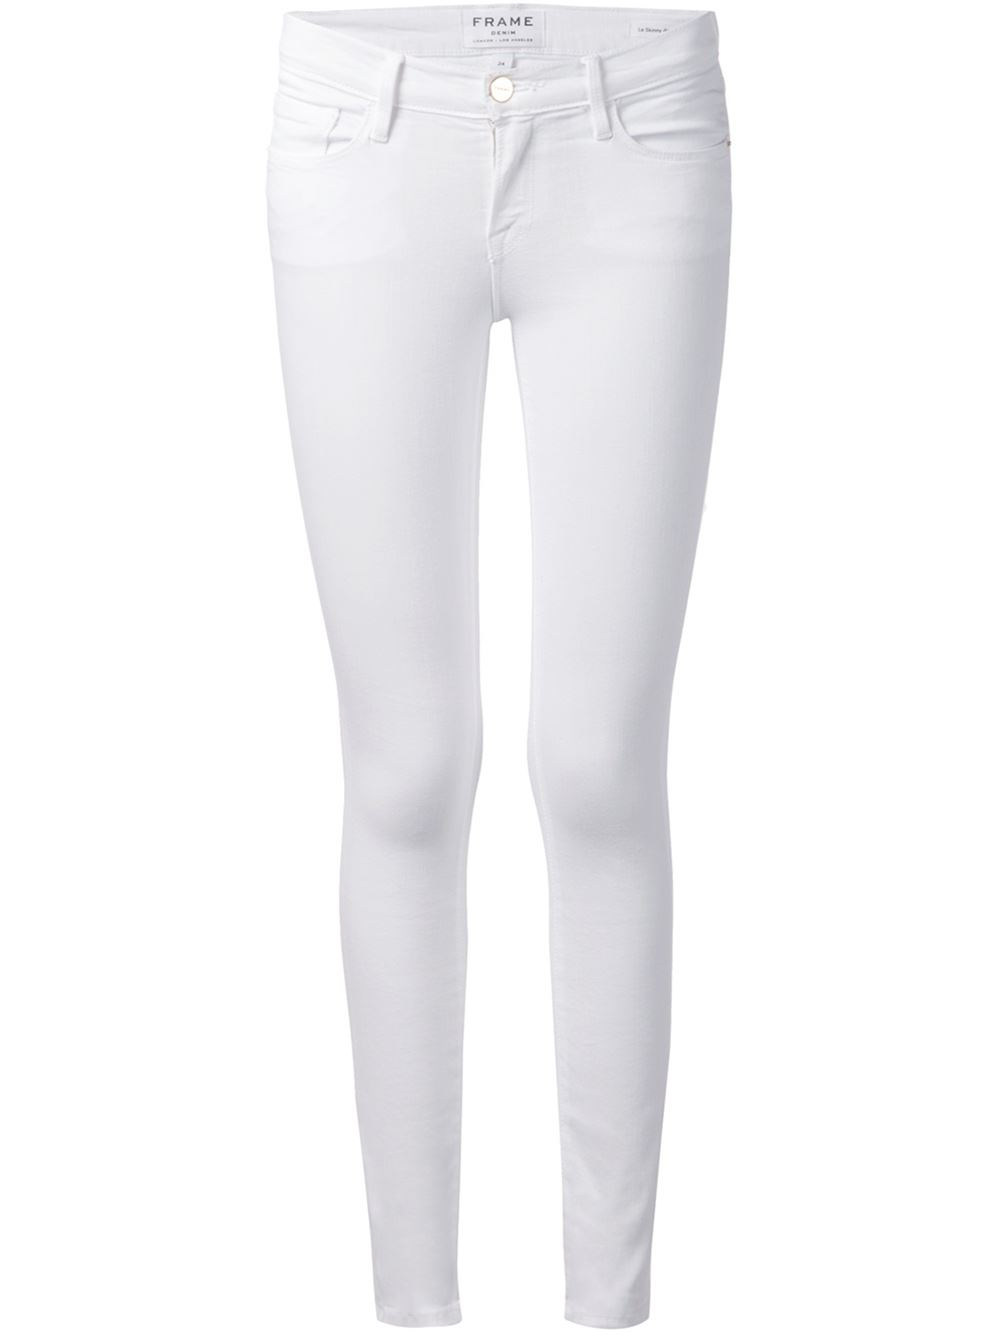 Women's White Skinny Jeans All Items () Get it Fast Sort by: Sorted just for you (after a quick quiz) Sort by customer rating Sort by featured Sort by newest Sort by price: low to high Sort by price: high to low Sort by percent off.